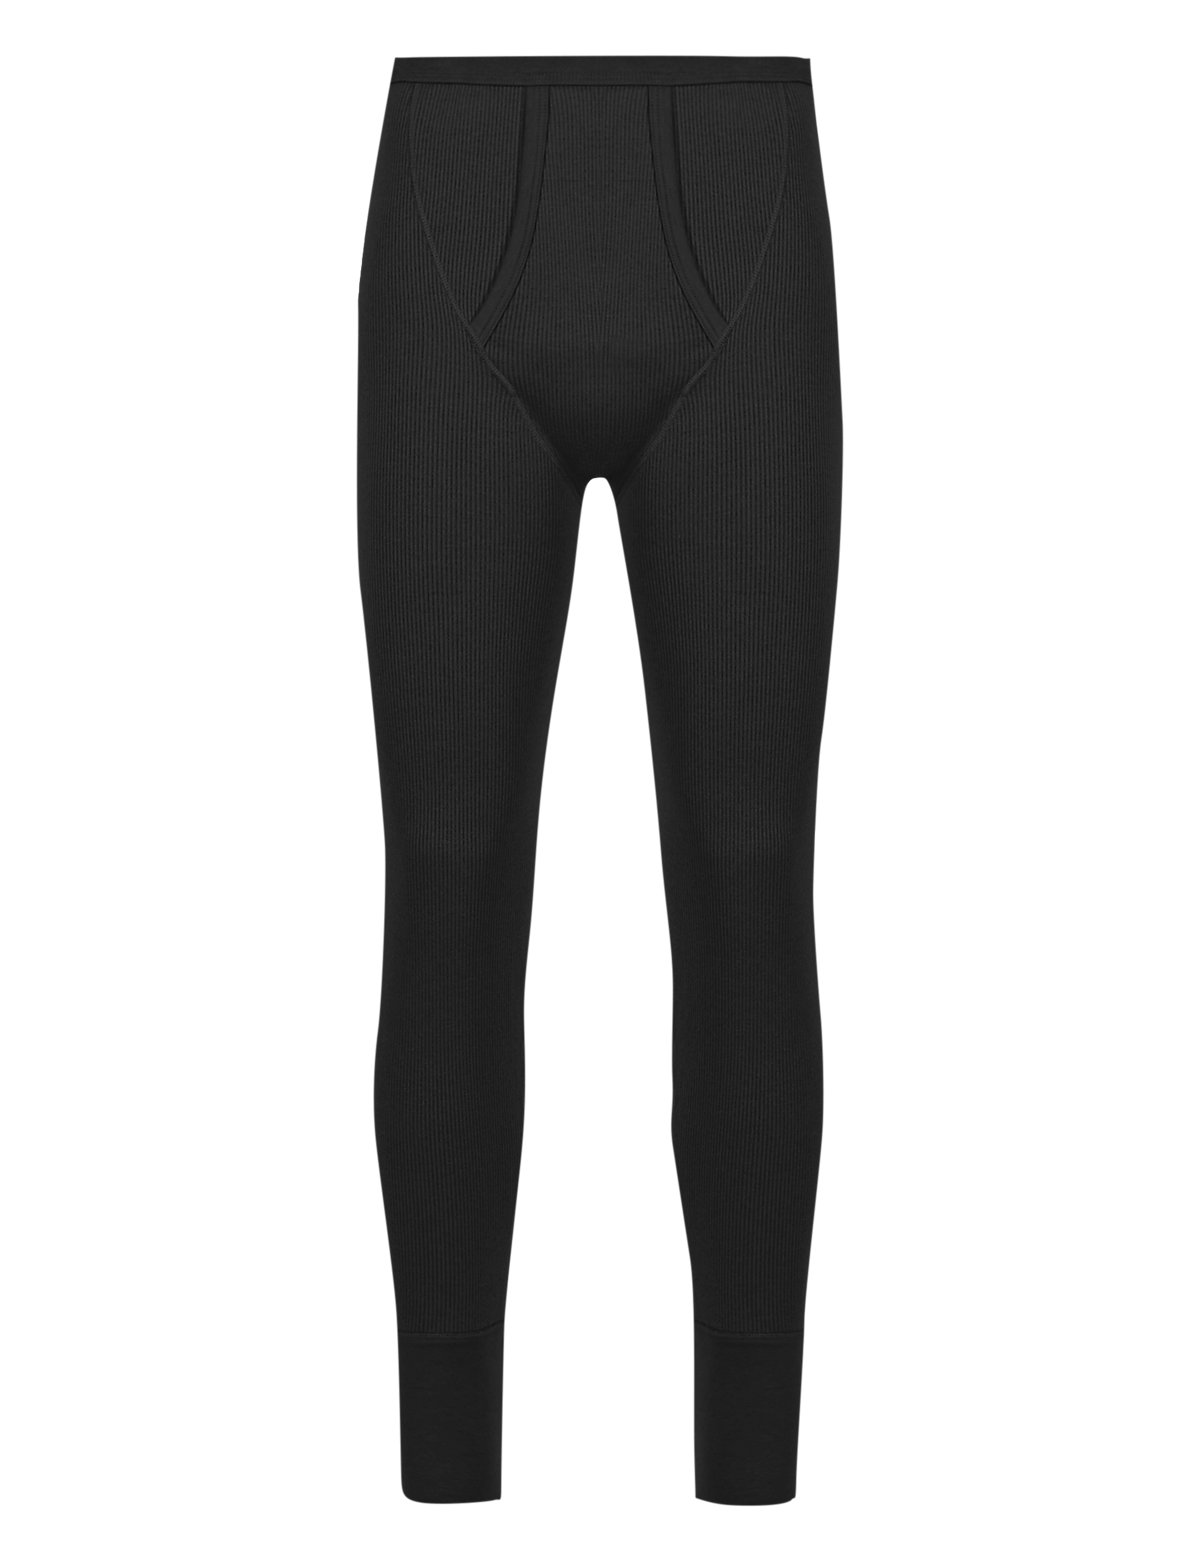 Marks & Spencer Black Cotton Rich Thermal Long Pants